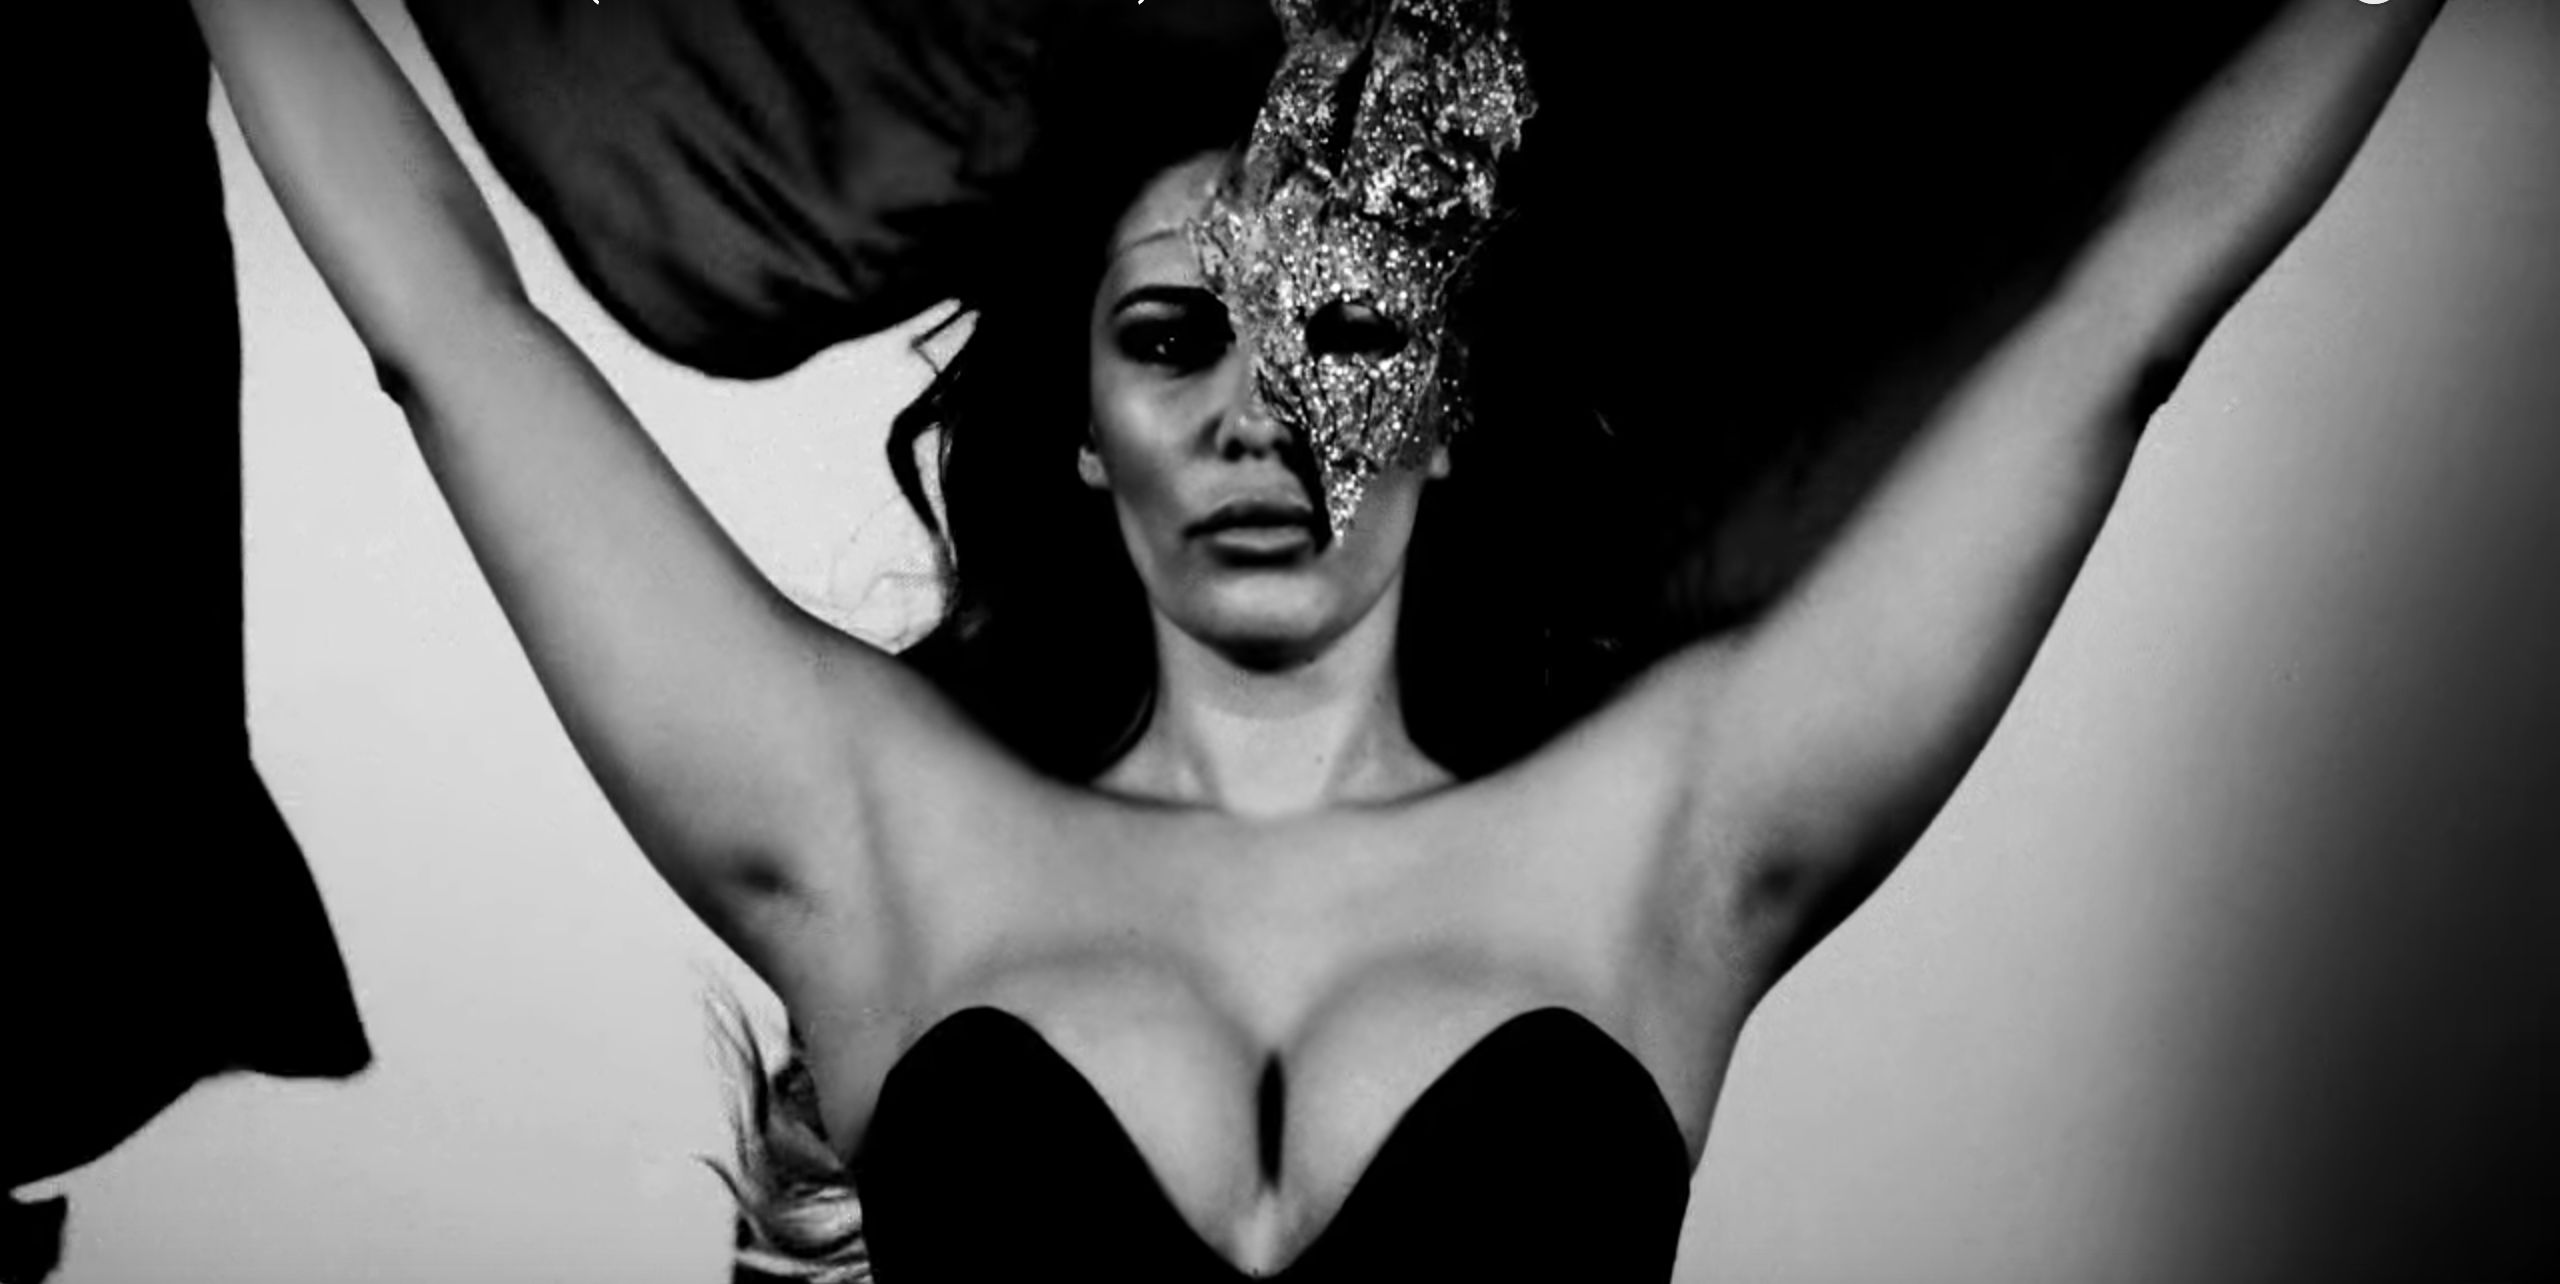 Still from the music video for